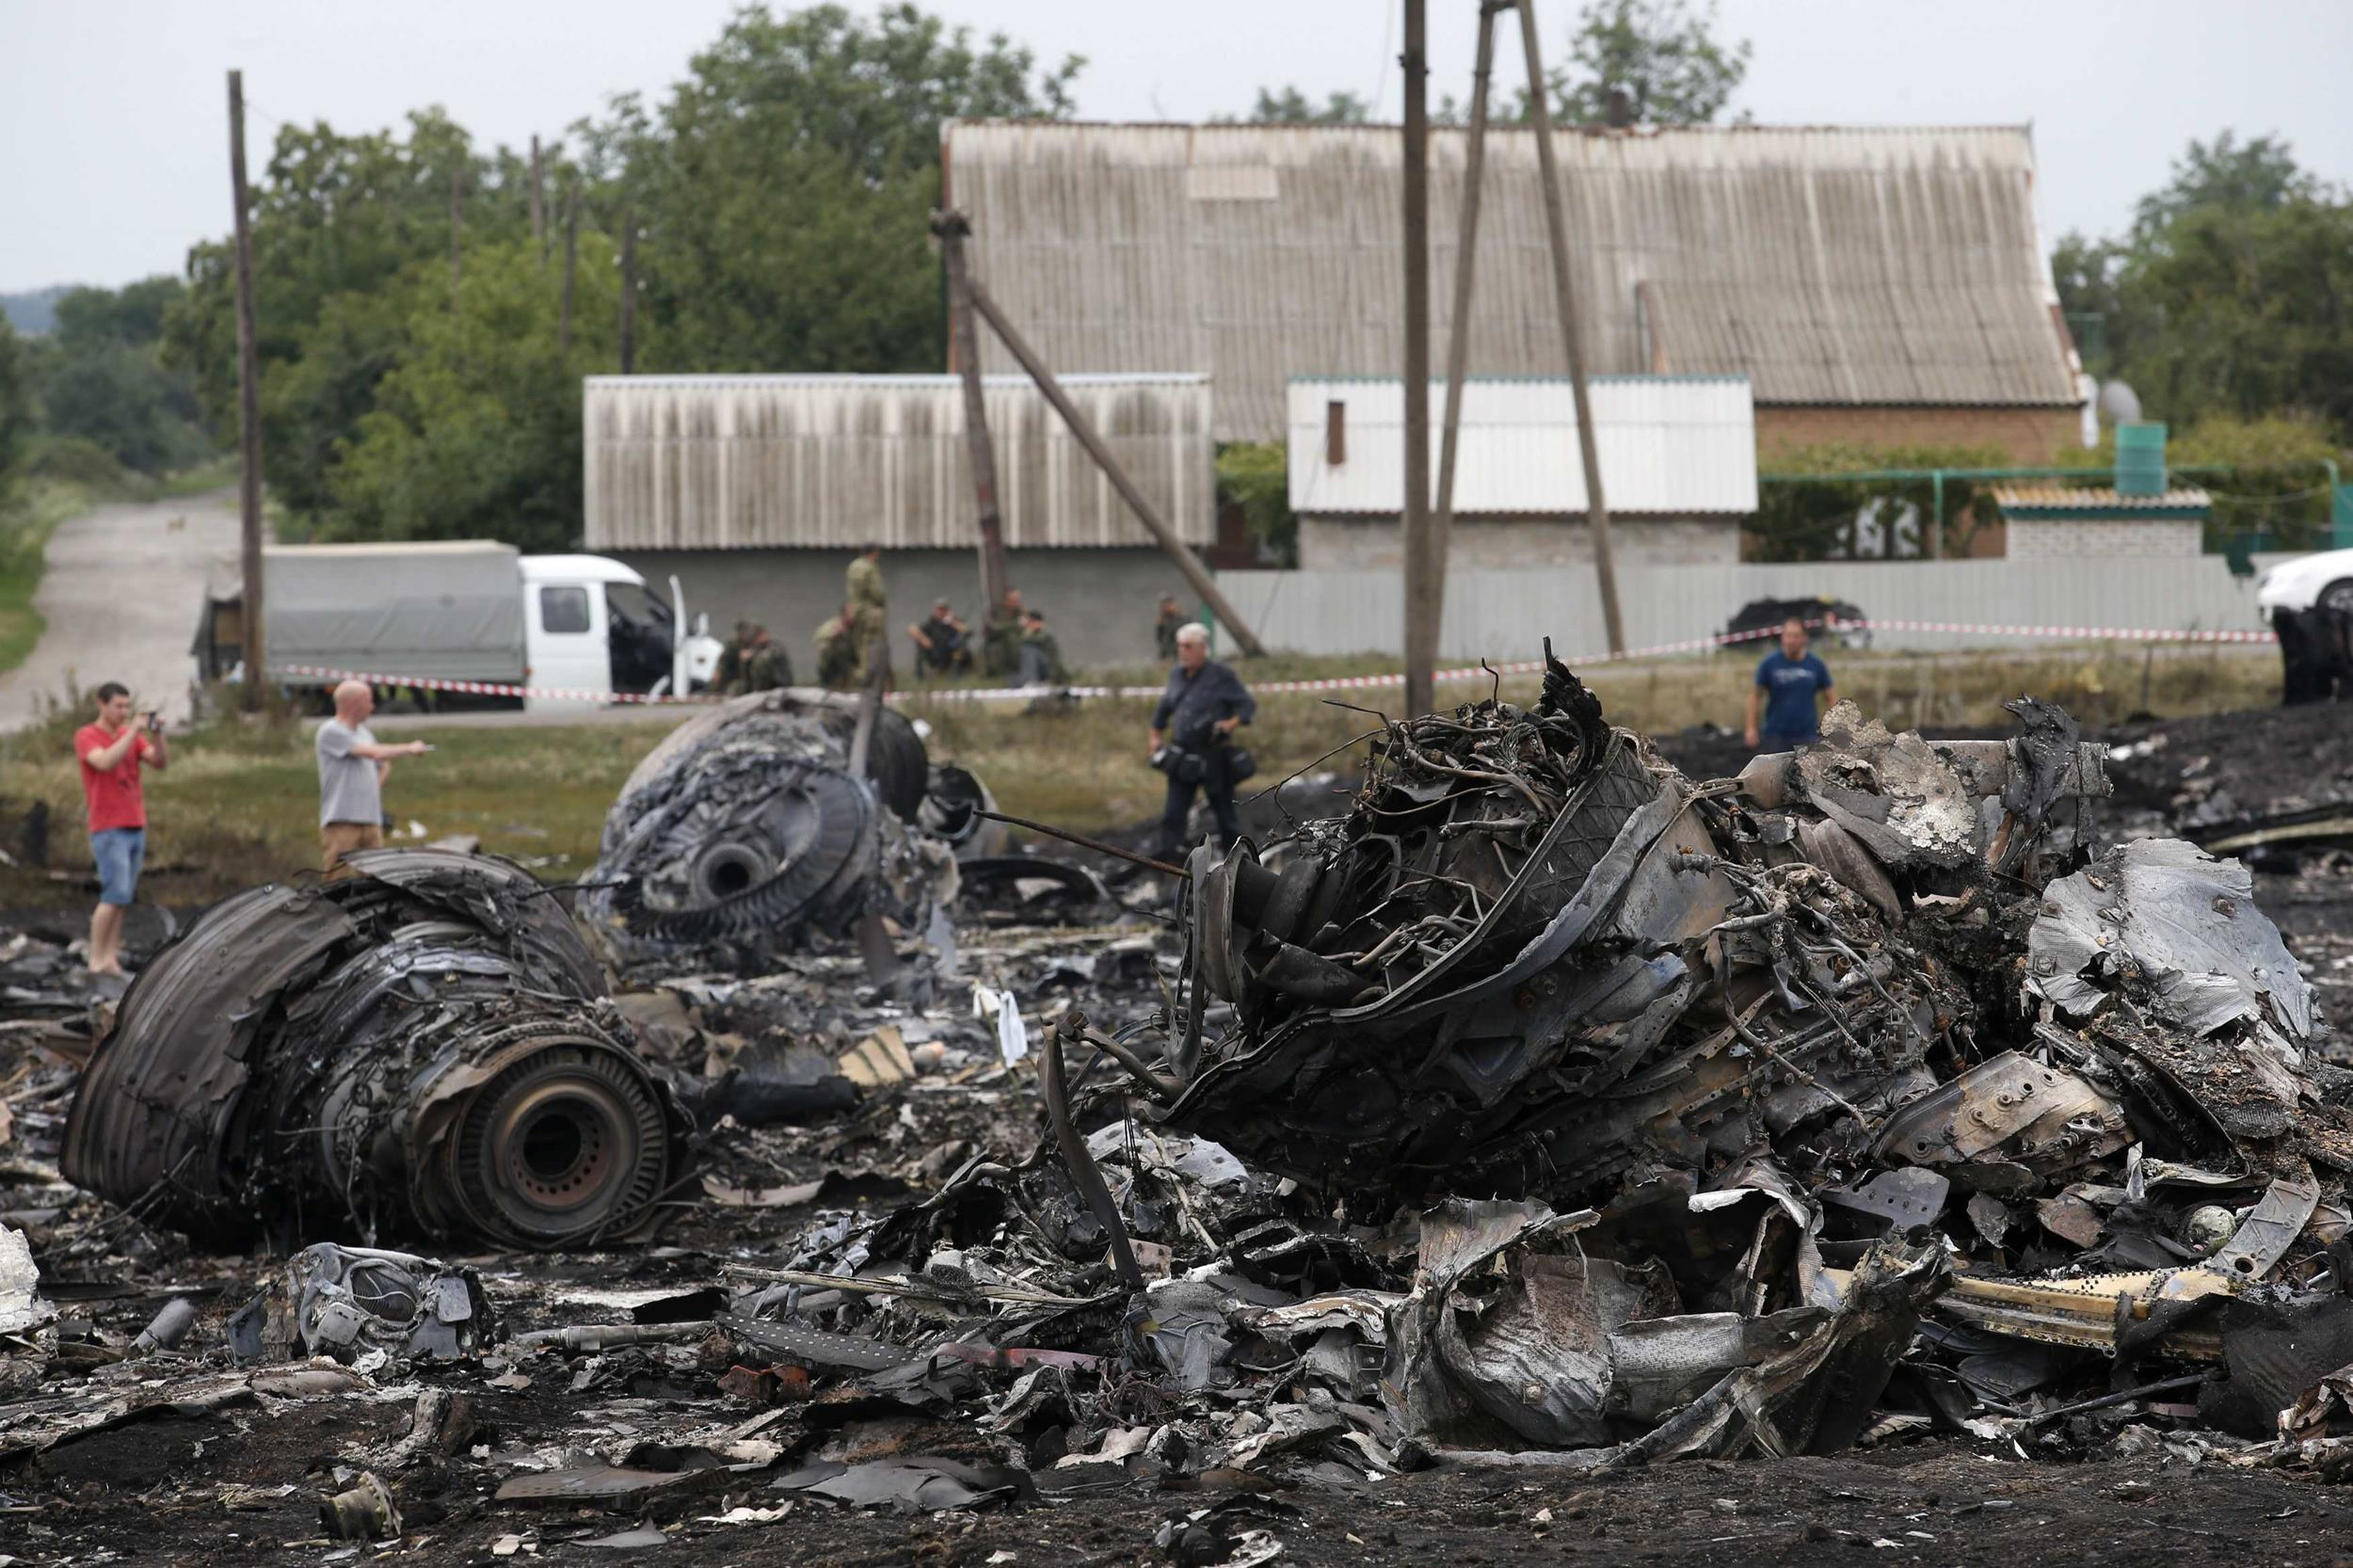 Image: Debris is seen at the site of Thursday's Malaysia Airlines Boeing 777 plane crash near the settlement of Grabovo, in the Donetsk region